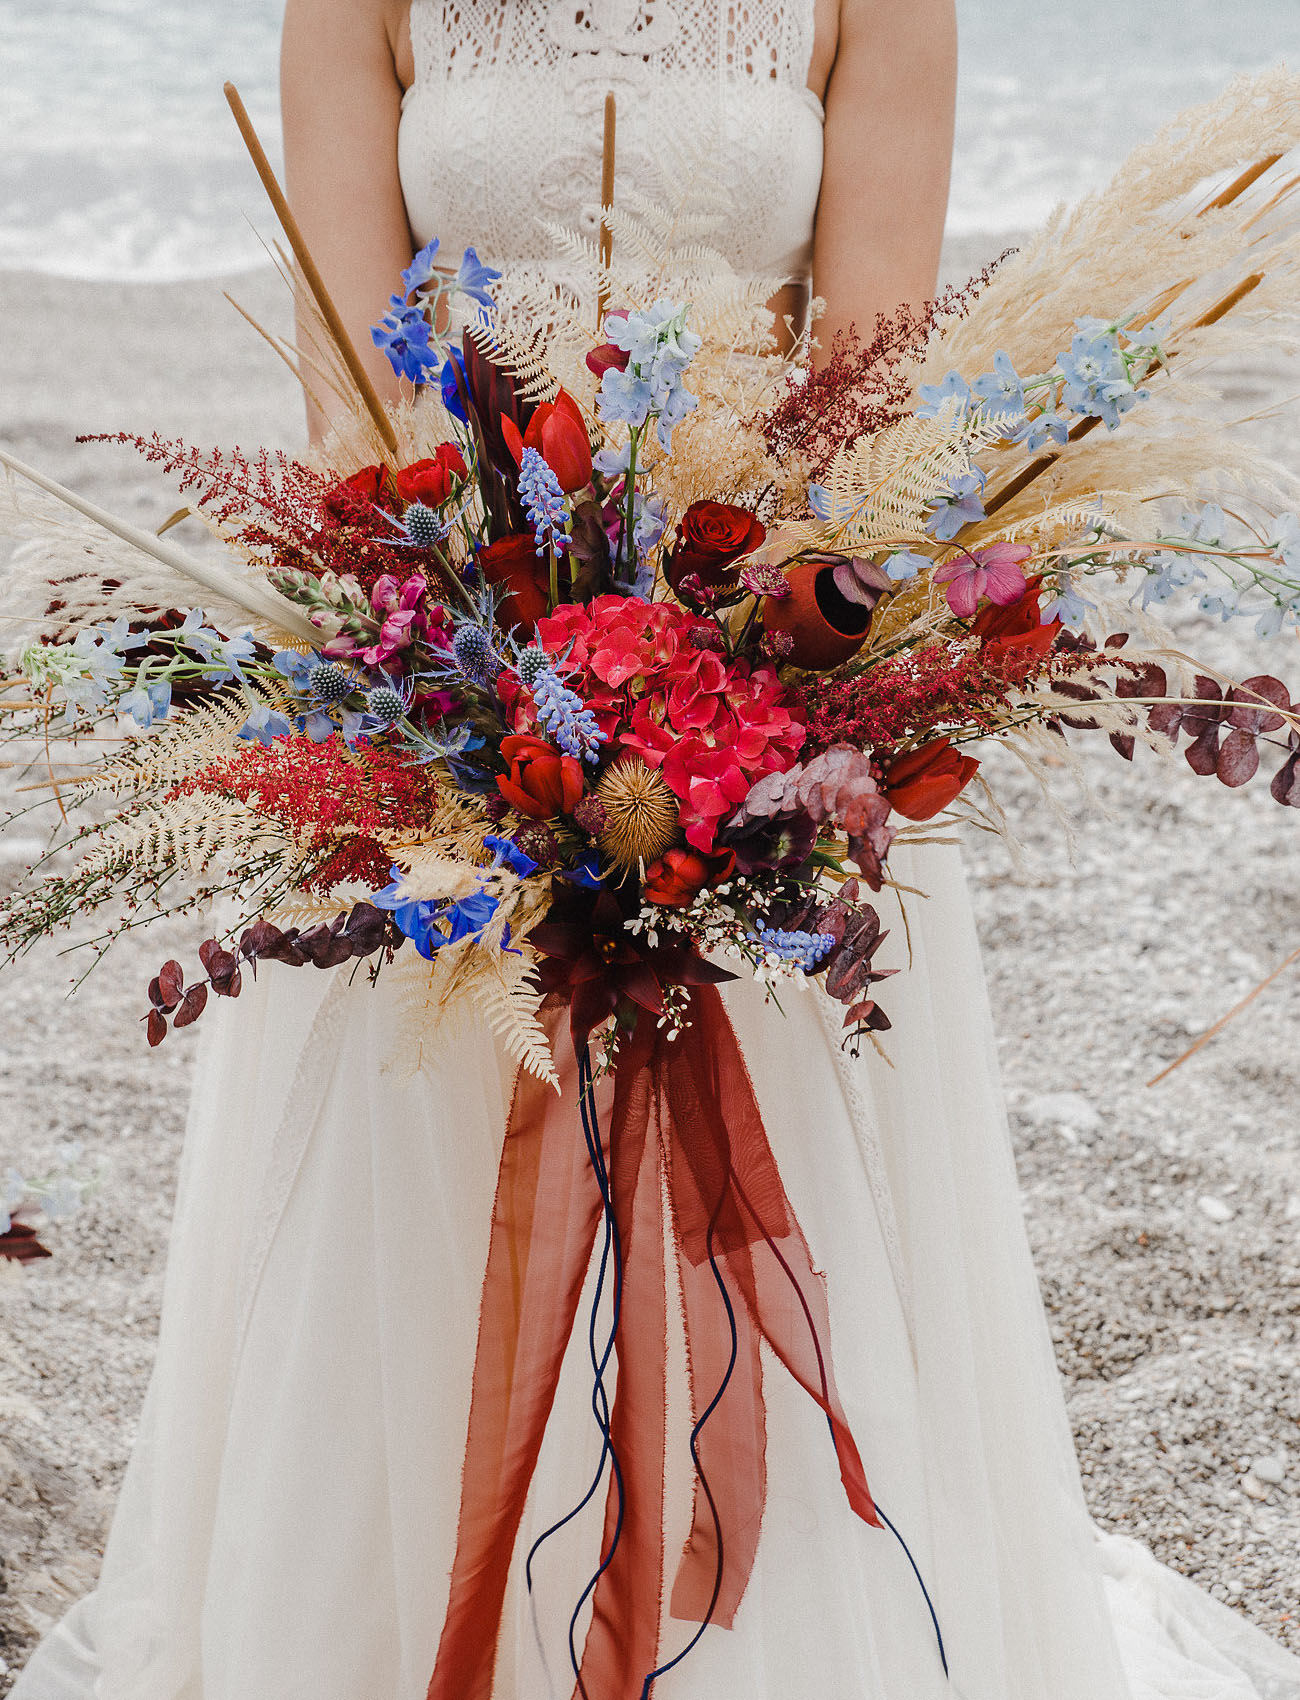 The wedding bouquet was super bright, red, blue, mustard, with lots of texture and ribbons